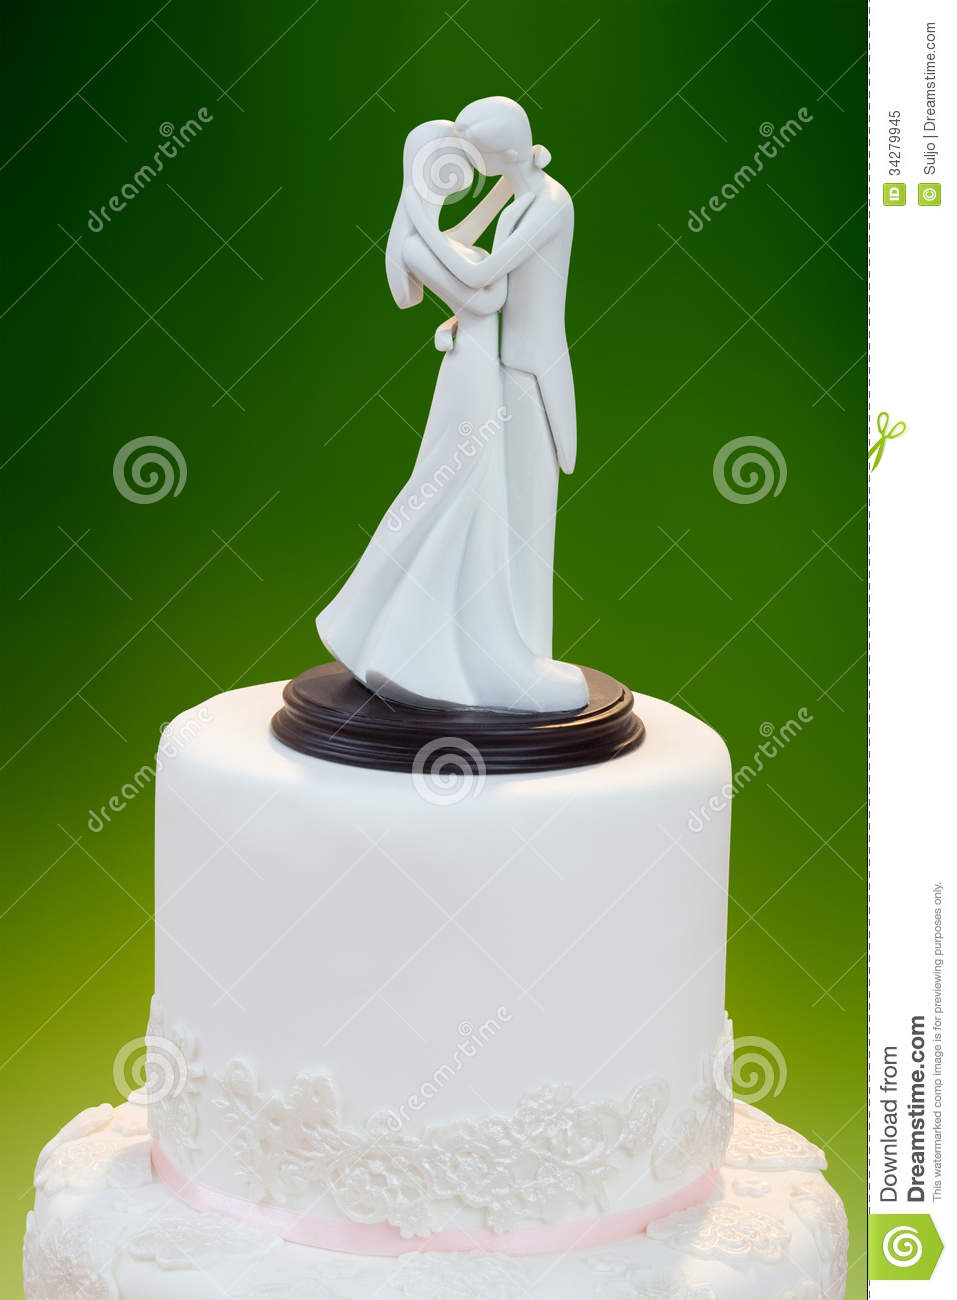 Wedding Cake Decorating Figurines : Wedding Decoration On The Cake Royalty Free Stock Photo ...